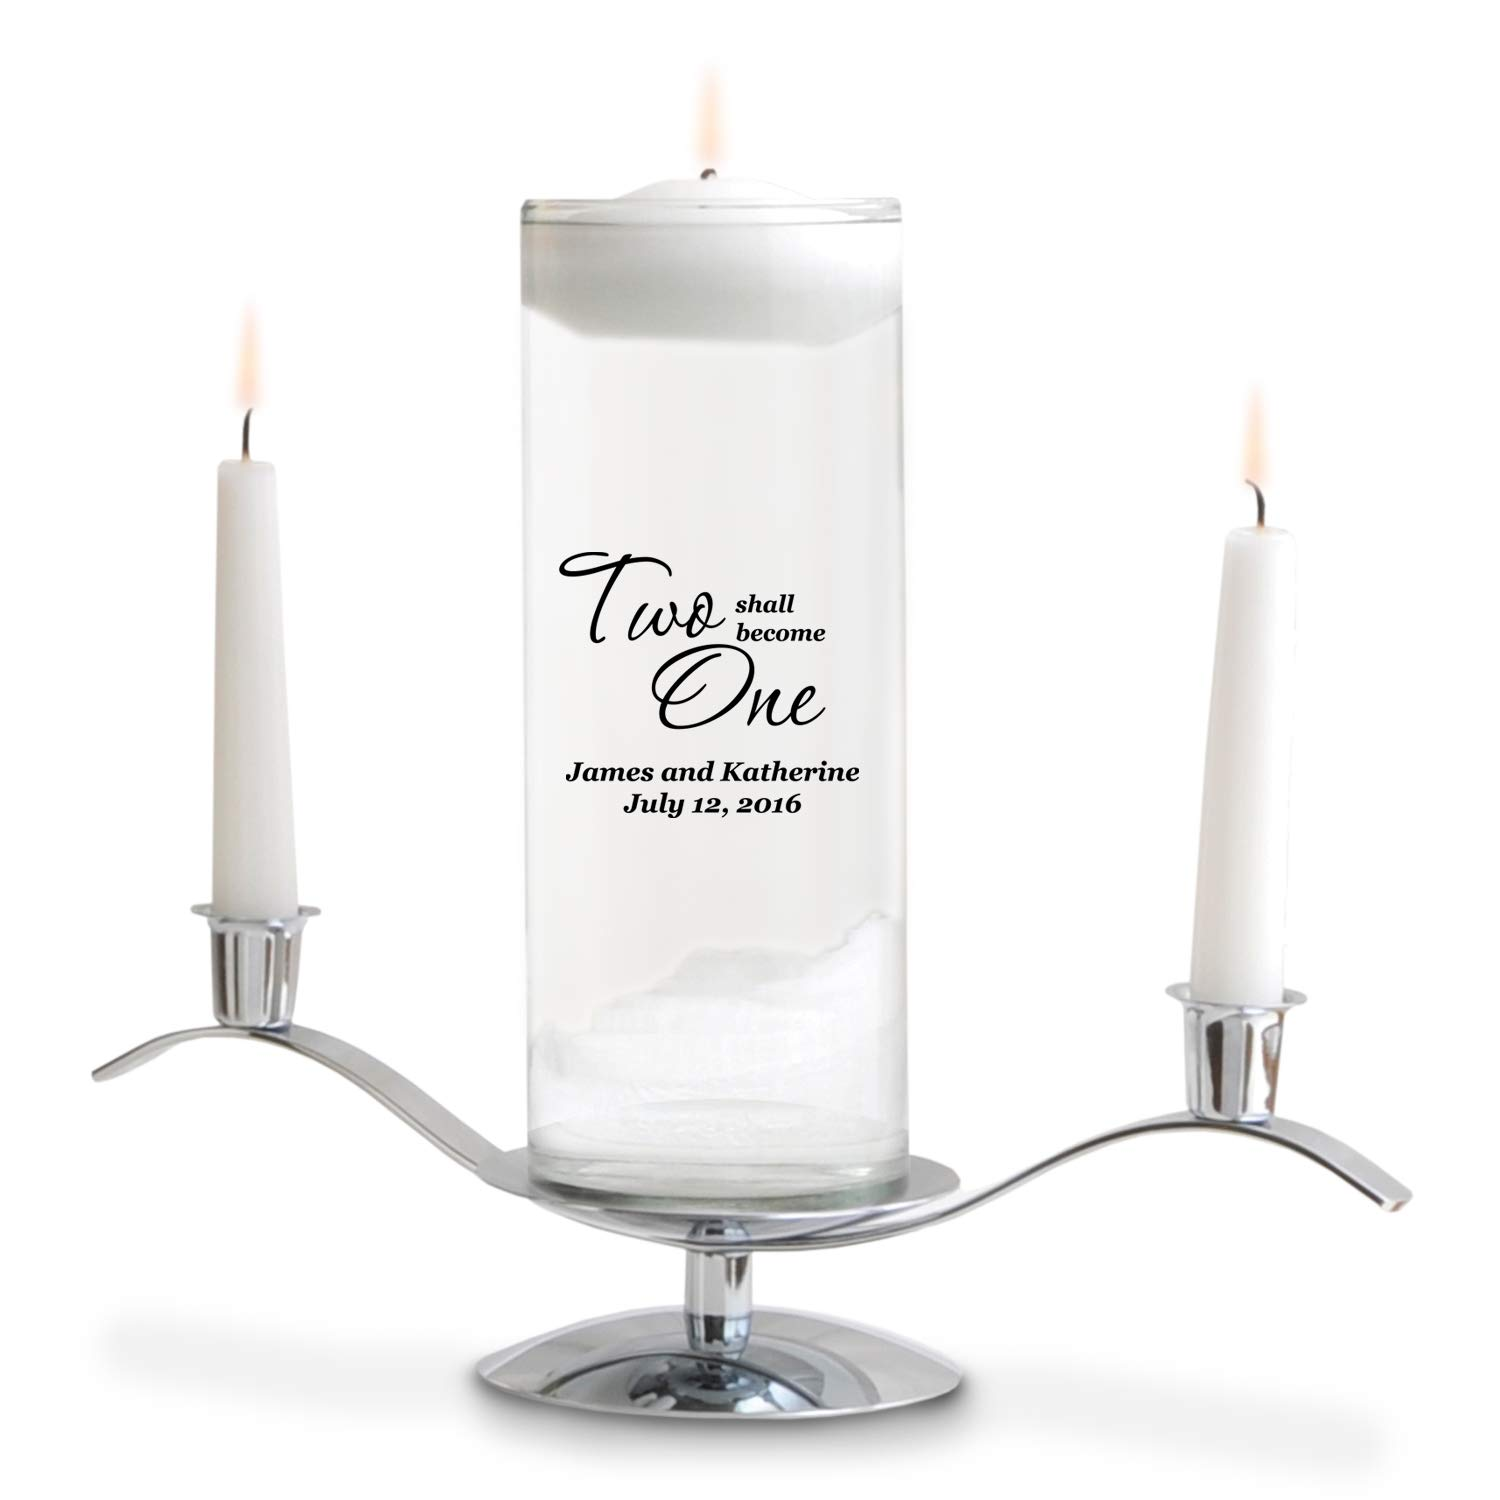 Personalized Floating Wedding Unity Candle - Personalized Wedding Candle - Includes Stand - Two Shall Become One by A Gift Personalized